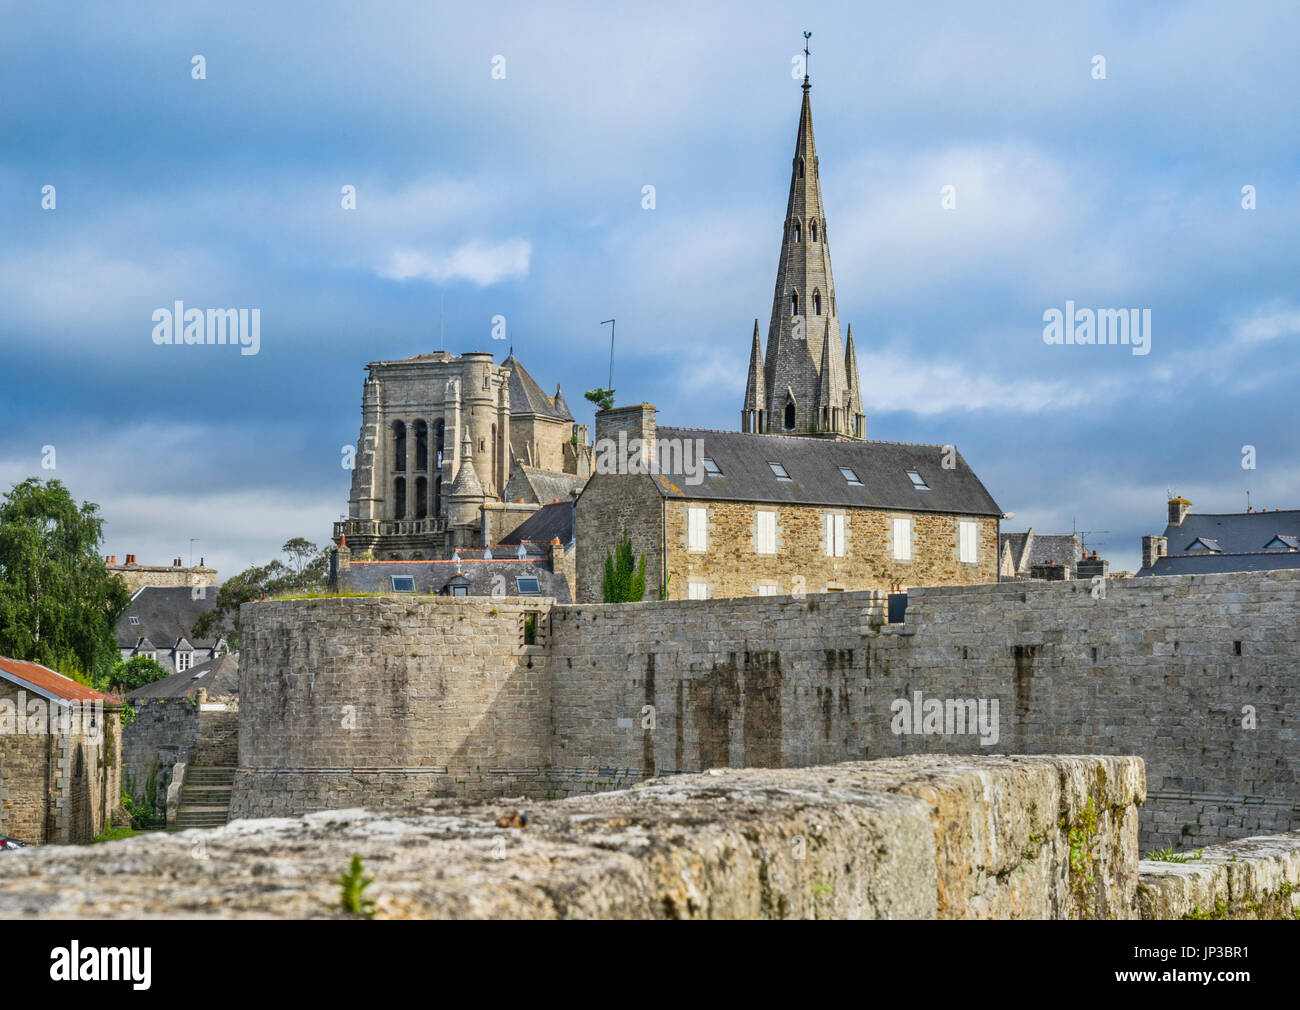 France, Brittany, Cotes-d'Armor department, Guingamp, Chateau de Pierre II was part of the city rampards, in the background the Basilica Notre Dame de - Stock Image